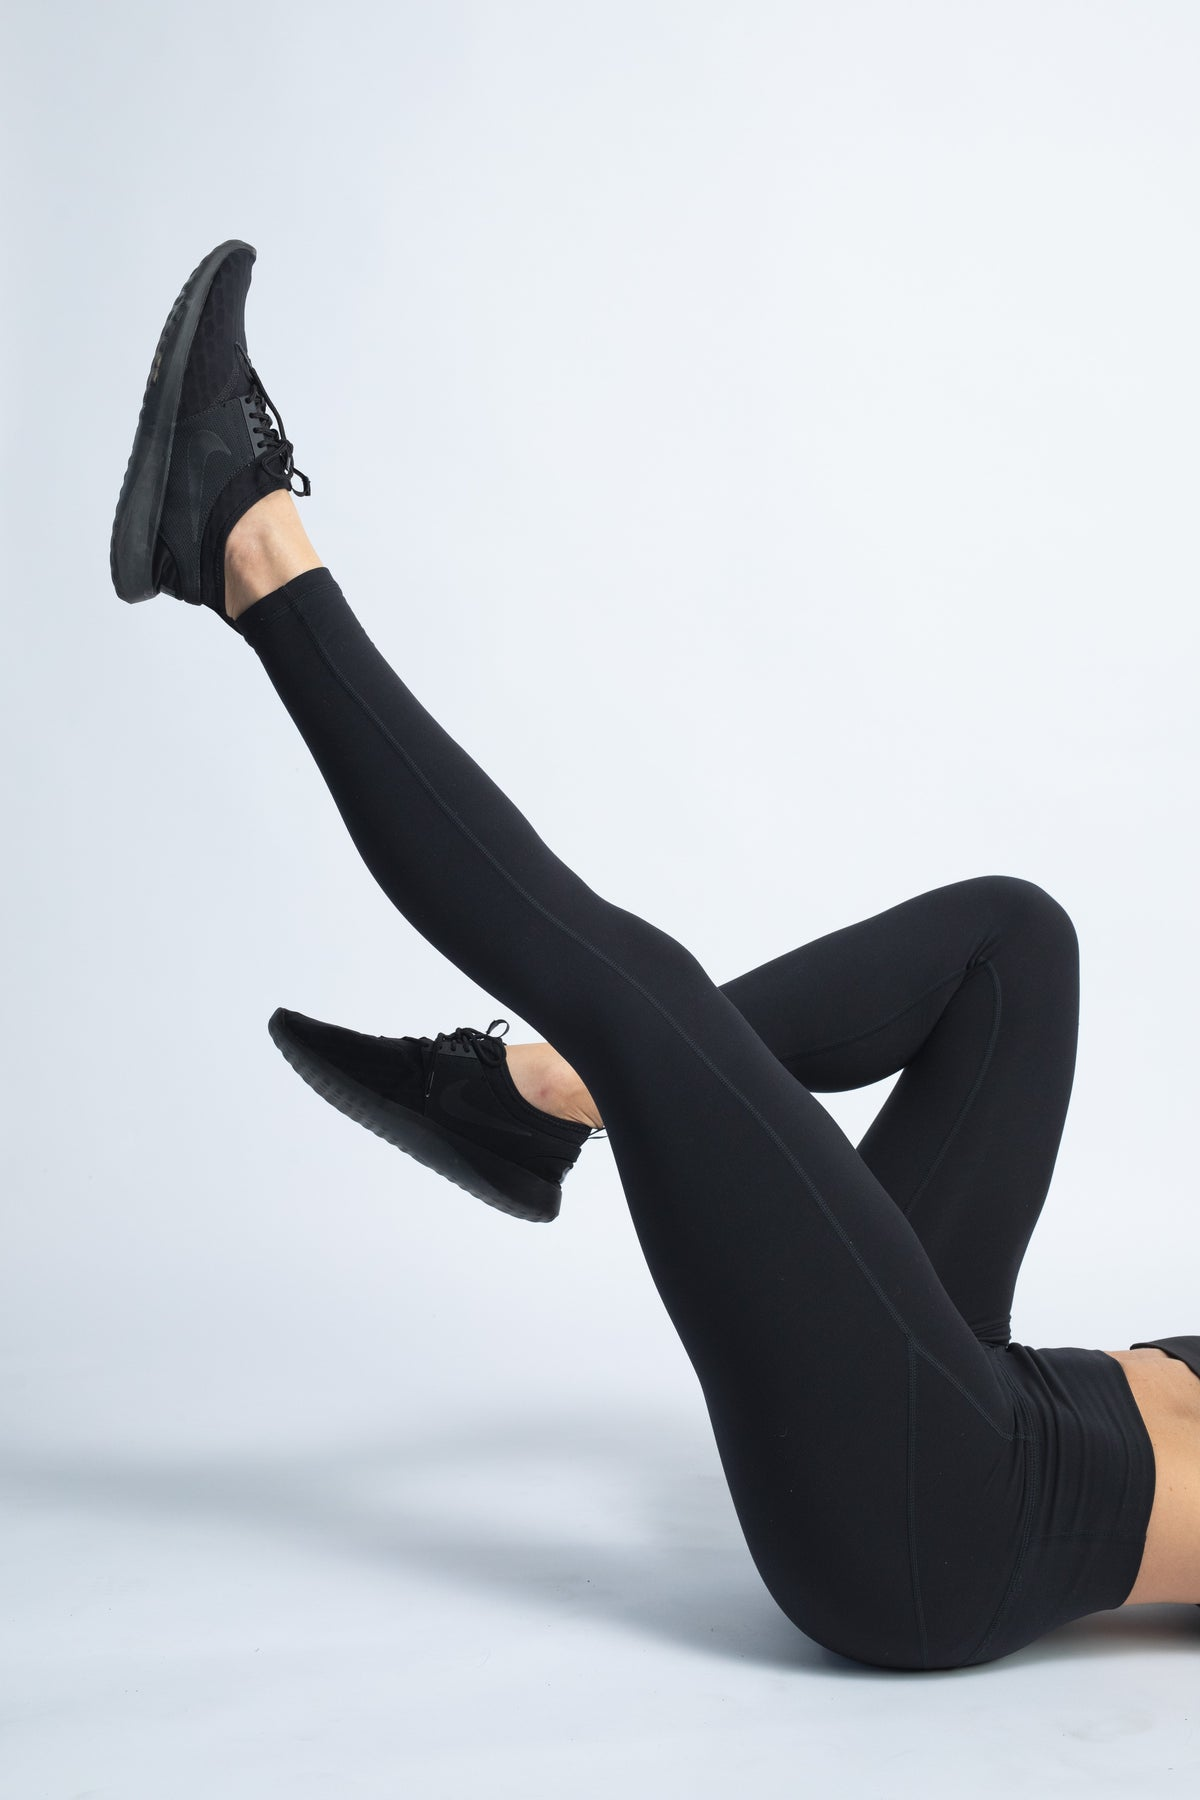 black buttery soft yoga pants full length leggings